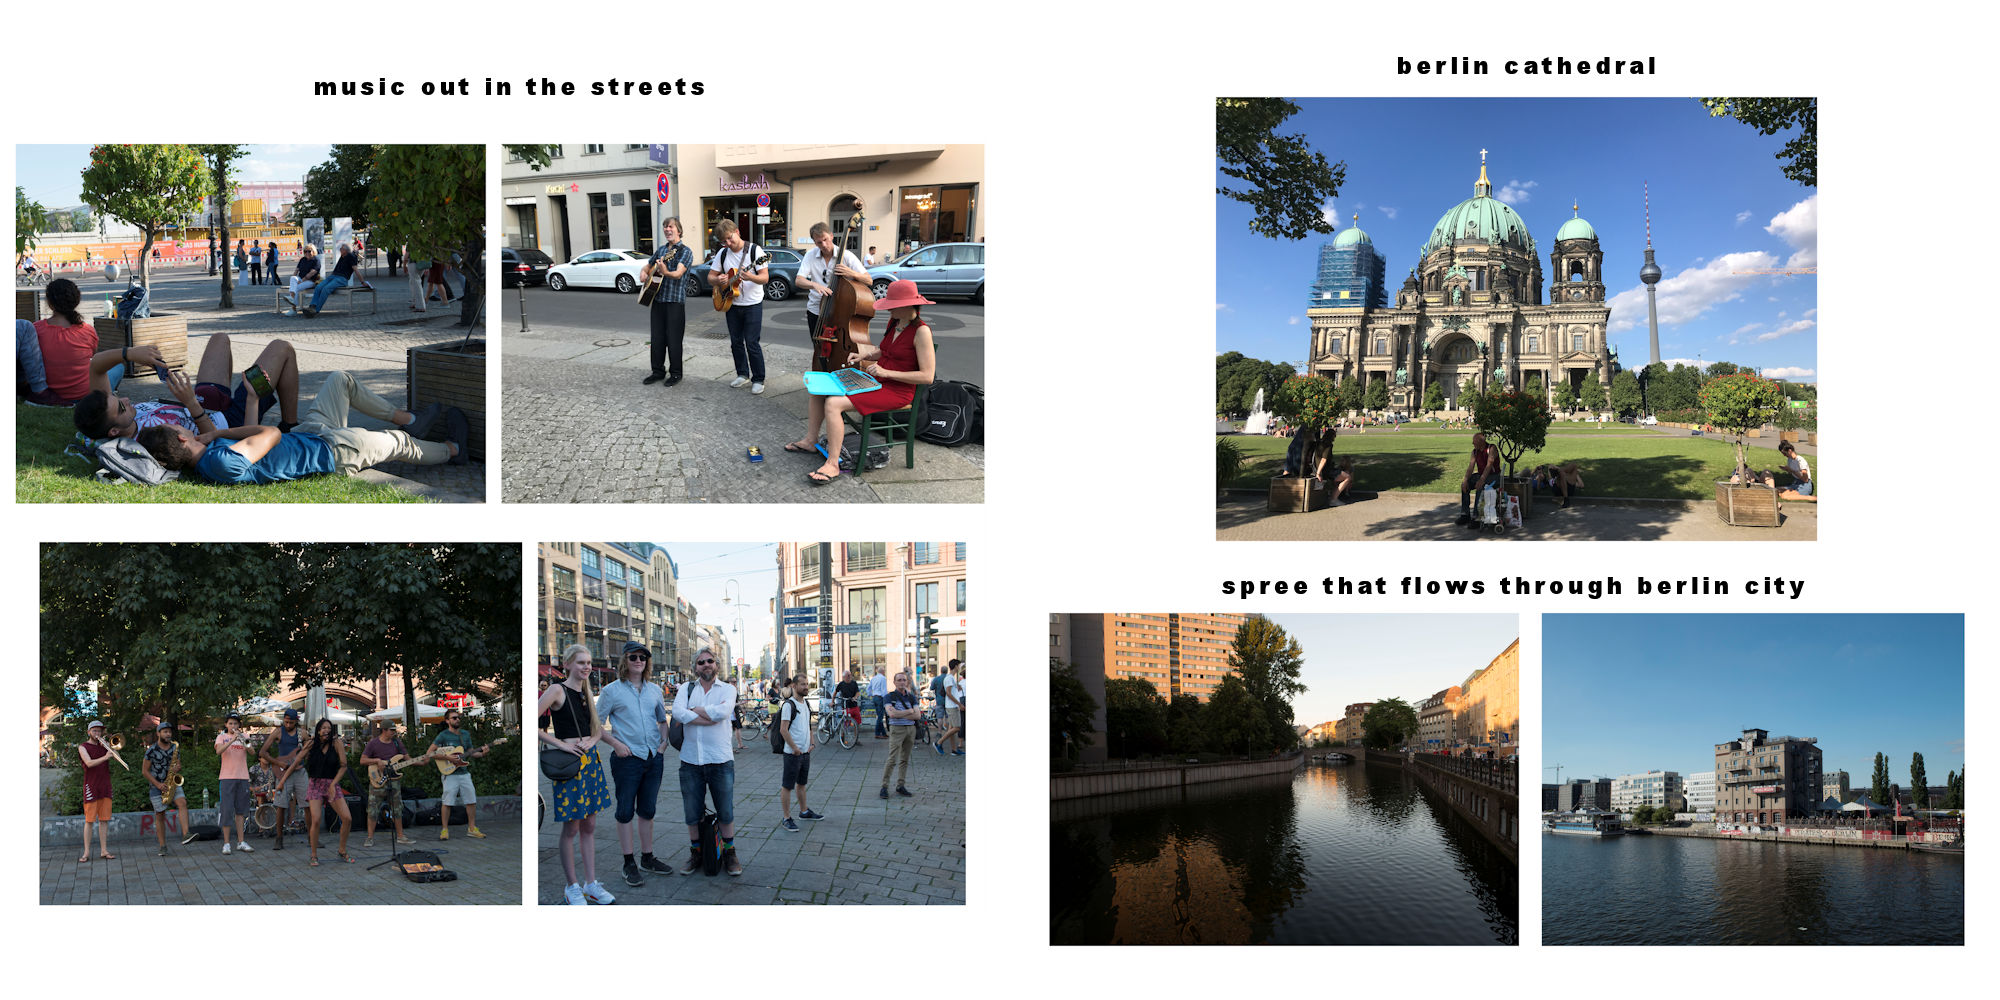 Berlin-2018 Album - Page 20: Street Musicians - Page 21:  Berlin Cathedral & the River Spree